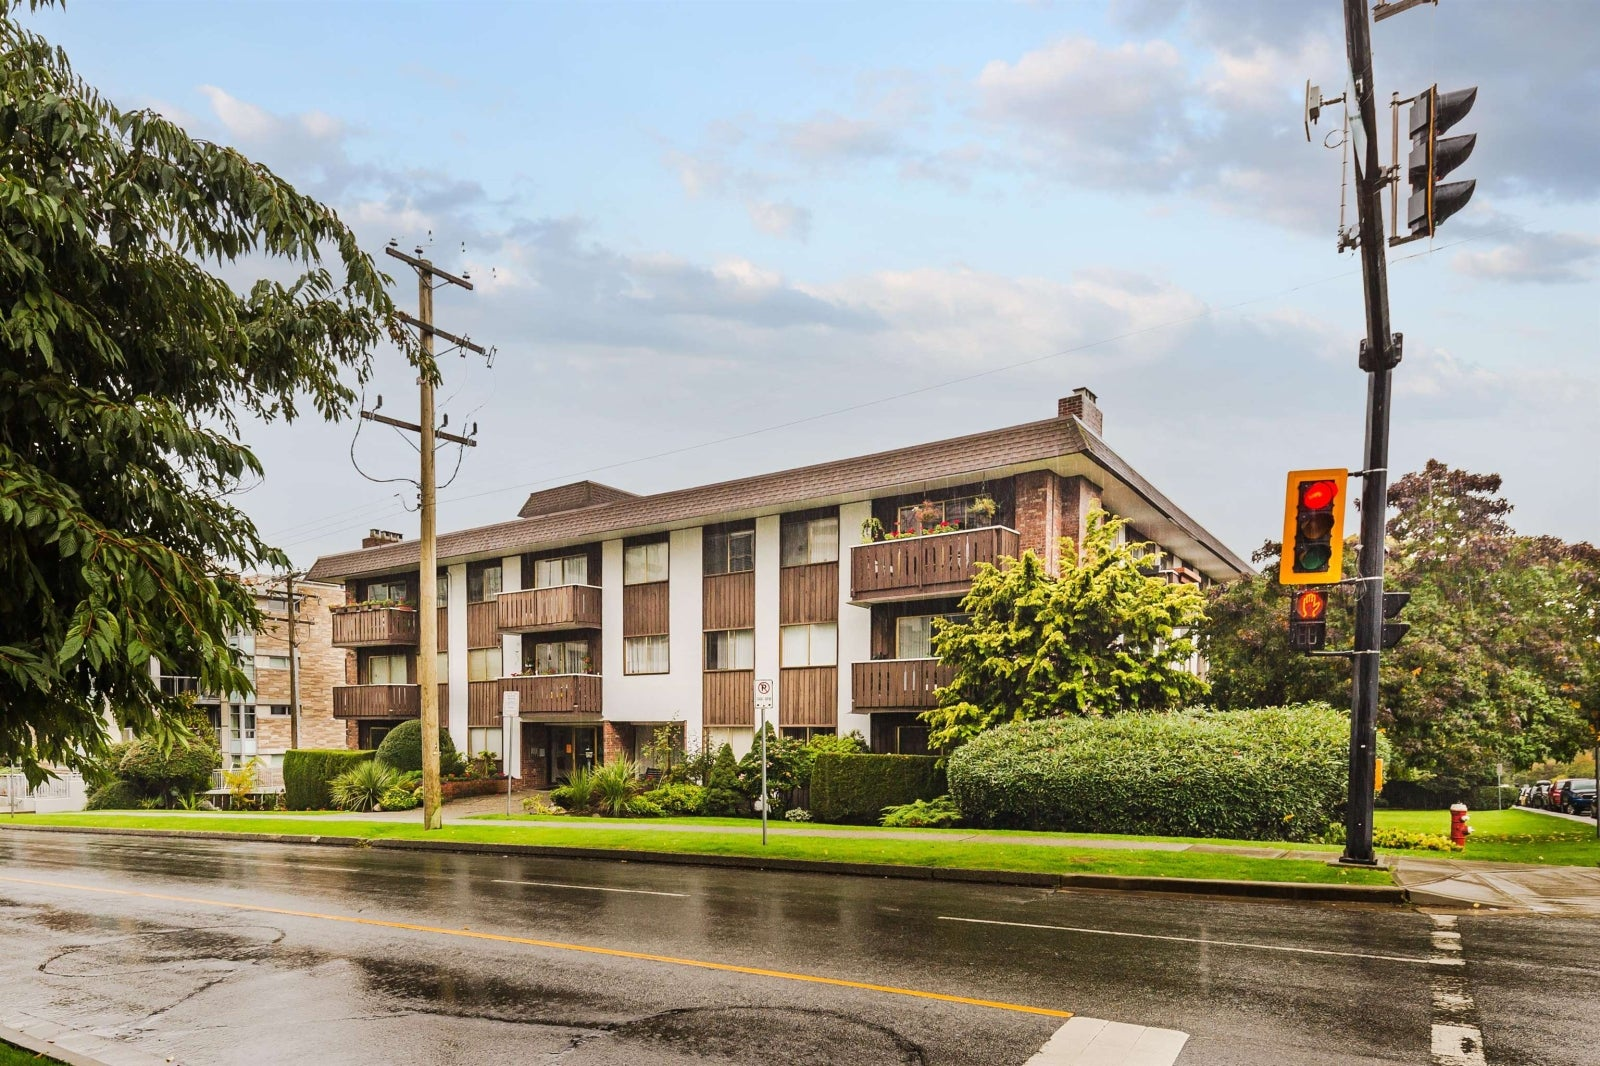 306 1345 CHESTERFIELD AVENUE - Central Lonsdale Apartment/Condo for sale, 1 Bedroom (R2622121) #1